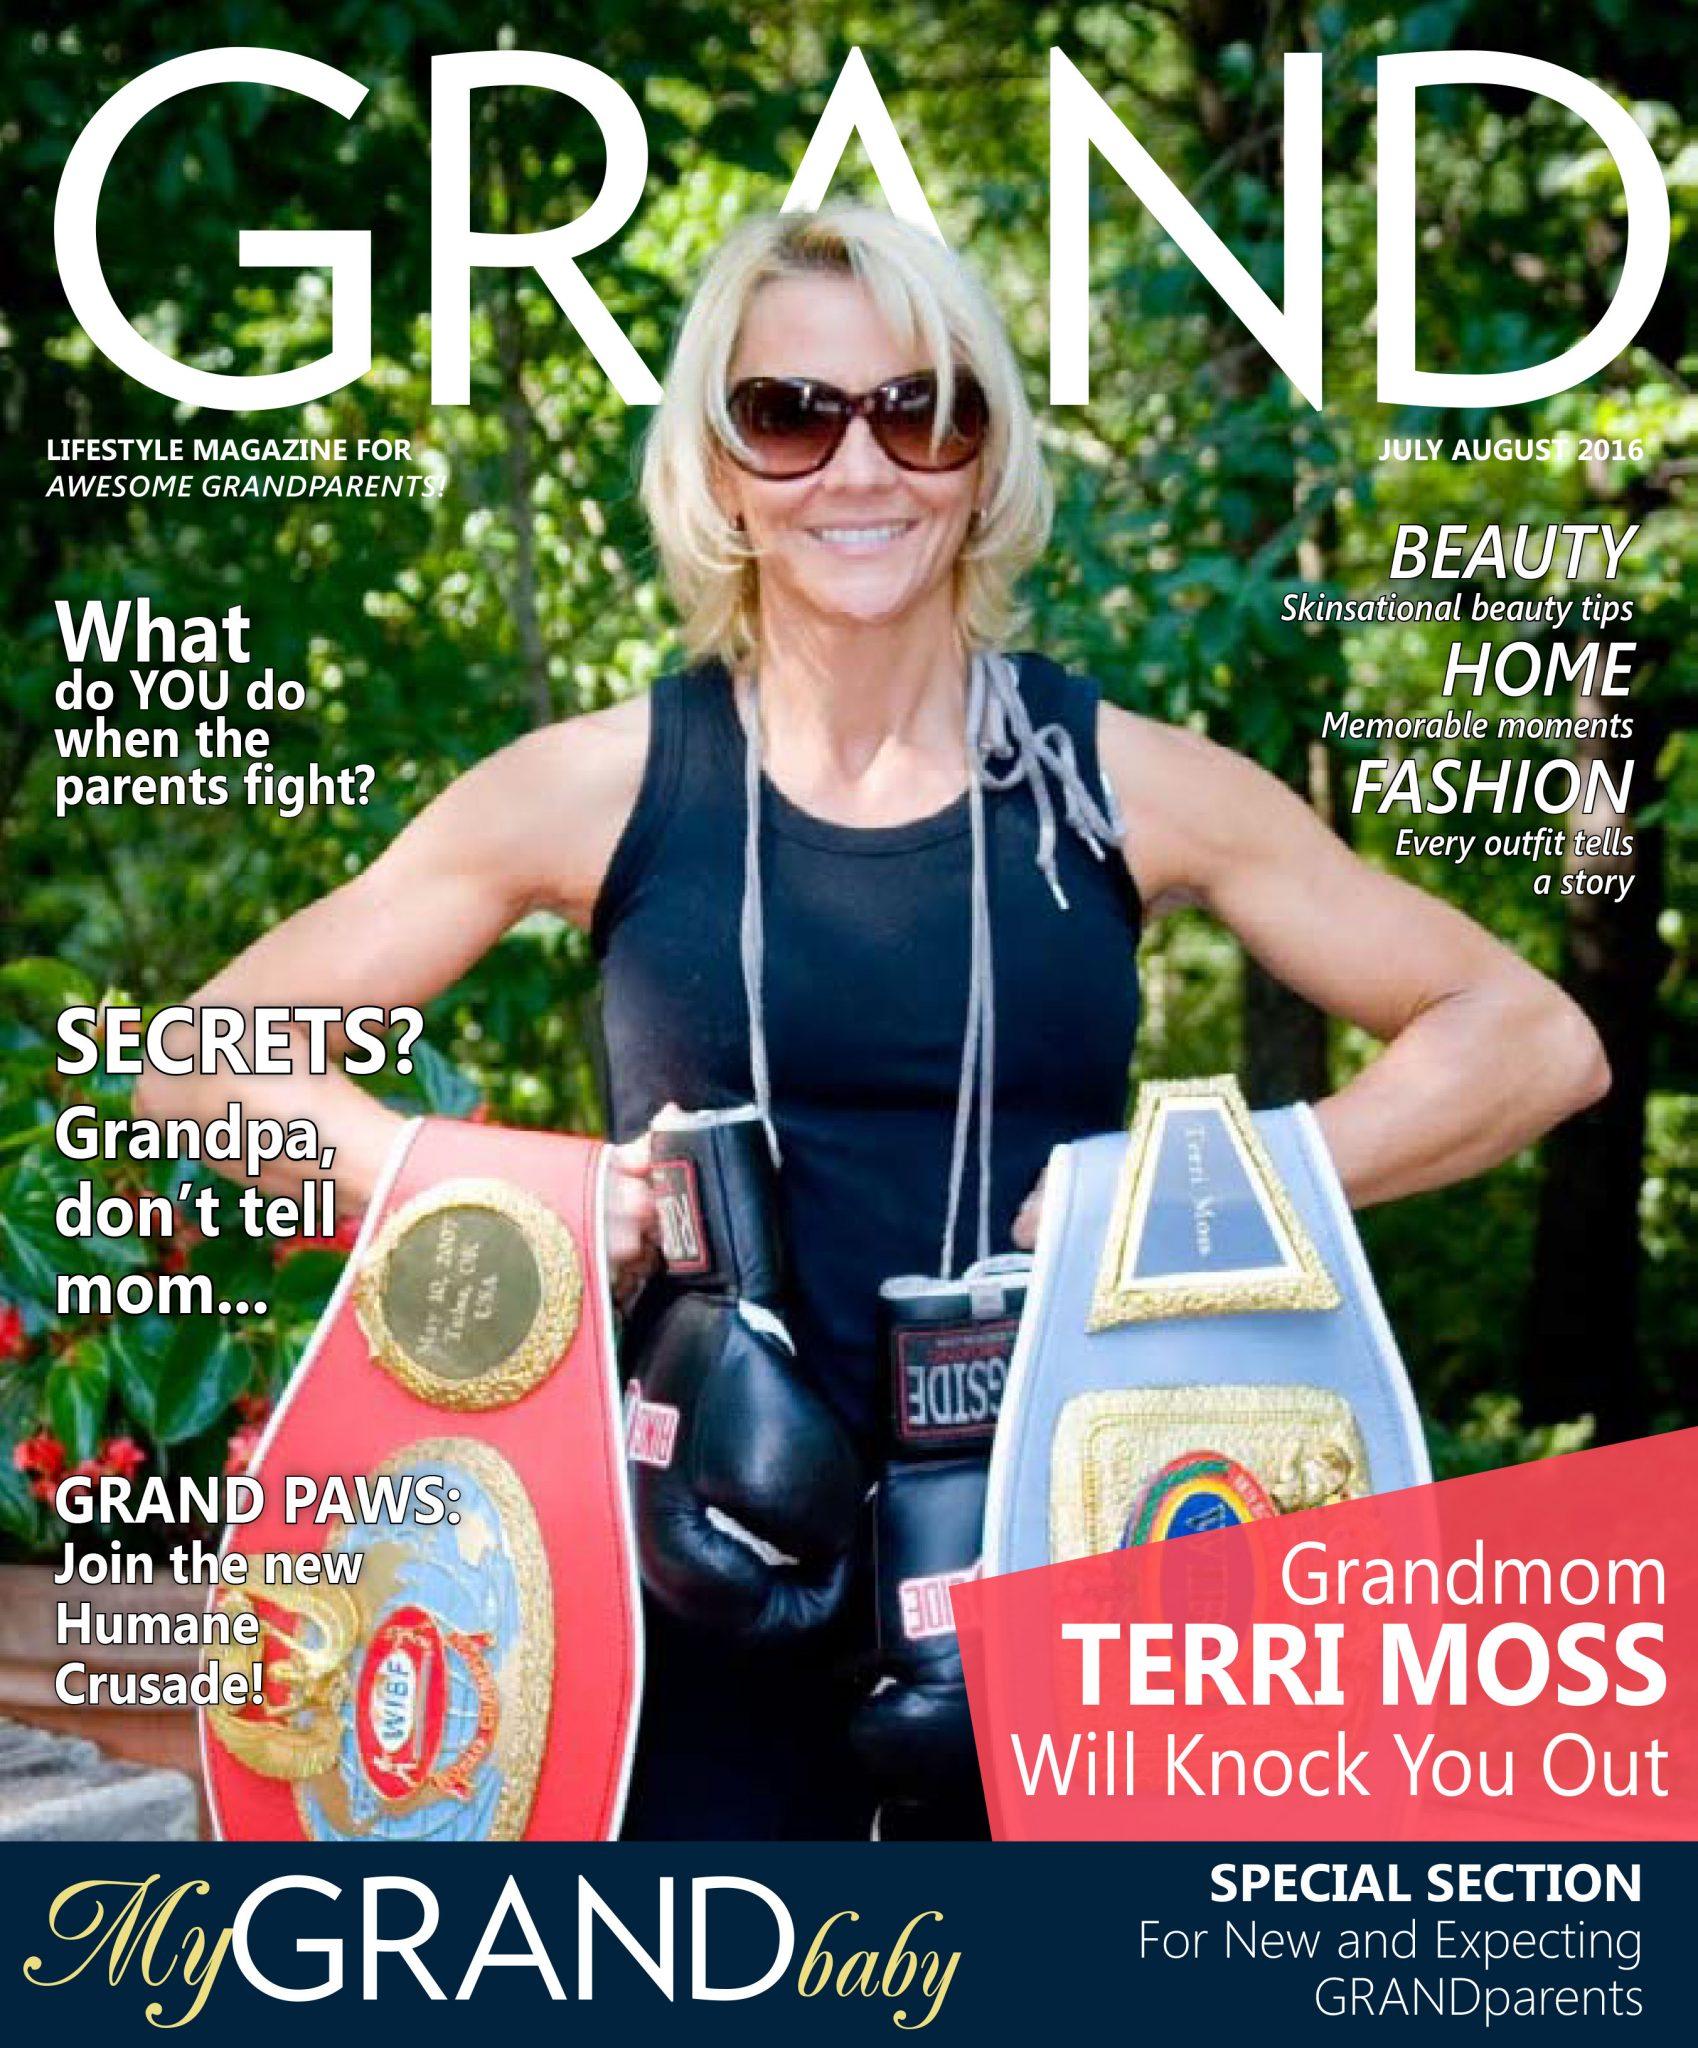 July/Aug 2016 GRAND Magazine cover